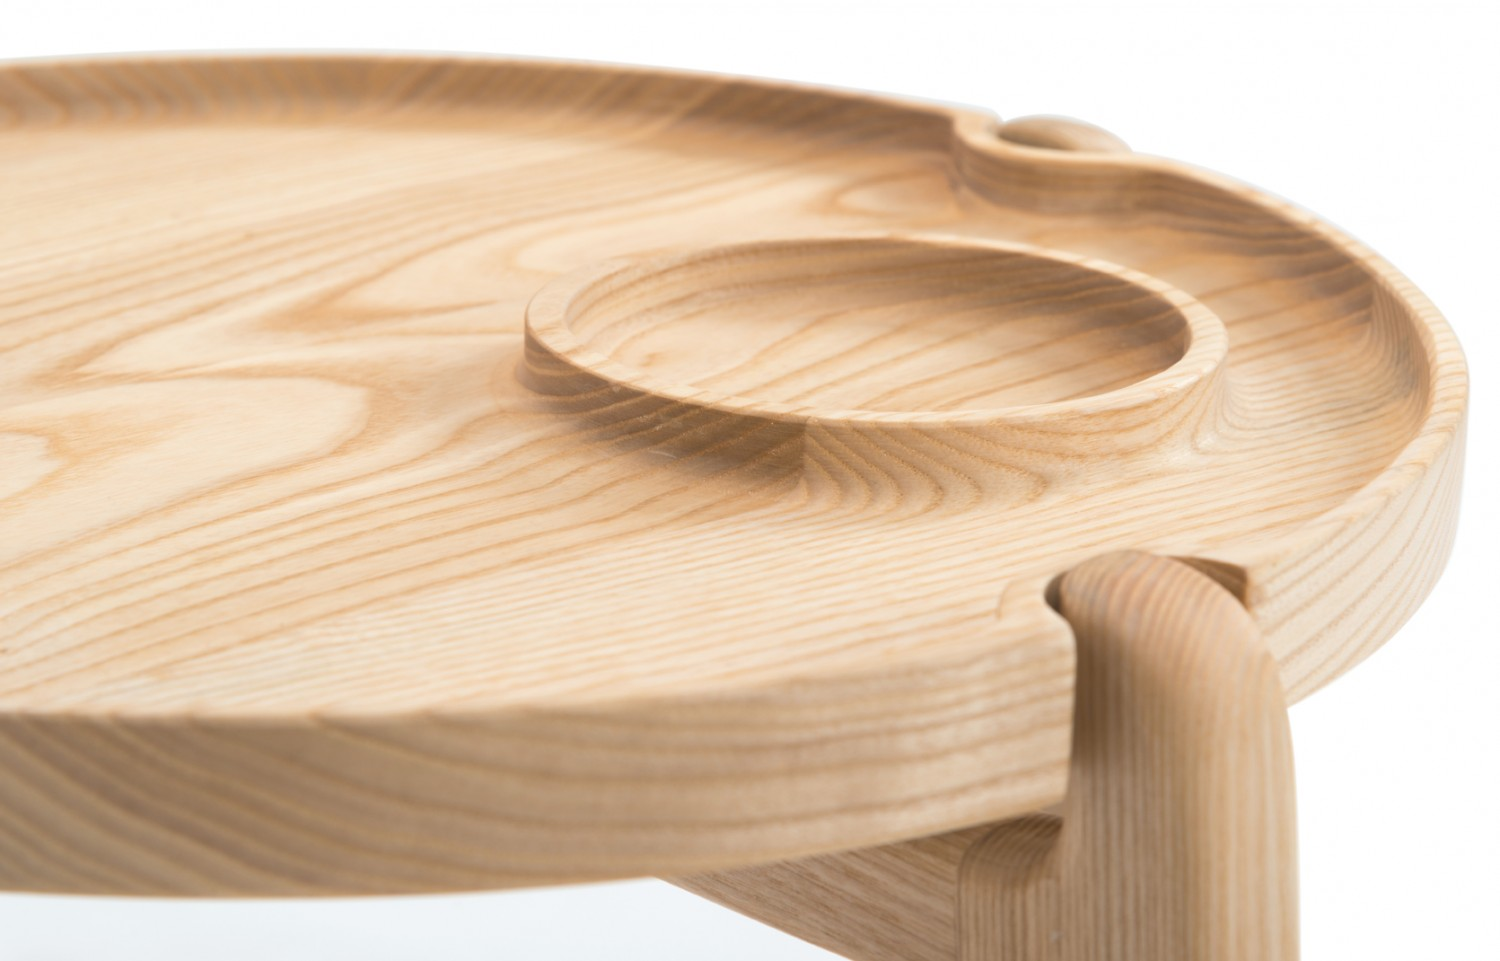 Again details on a side table that makes it both functional and beautiful.